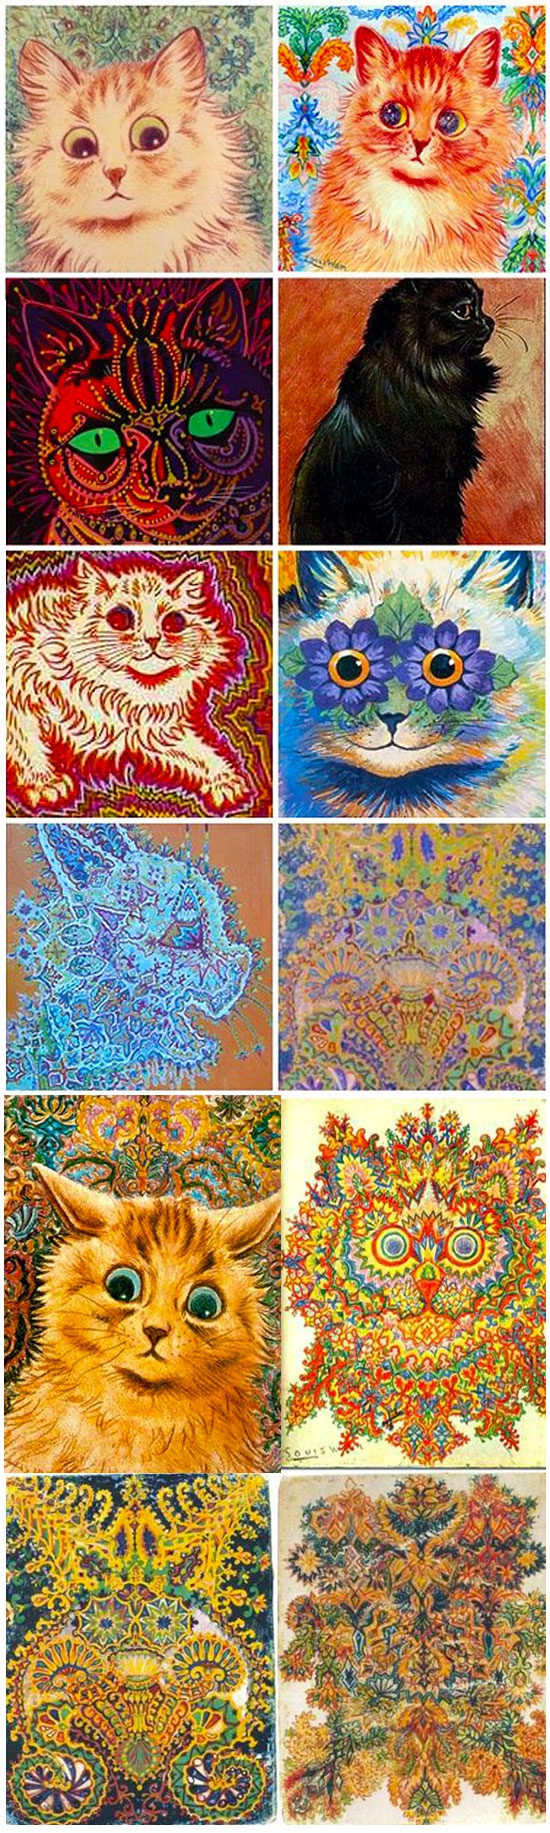 The Astounding Art Of A Schizophrenic Cat Lover